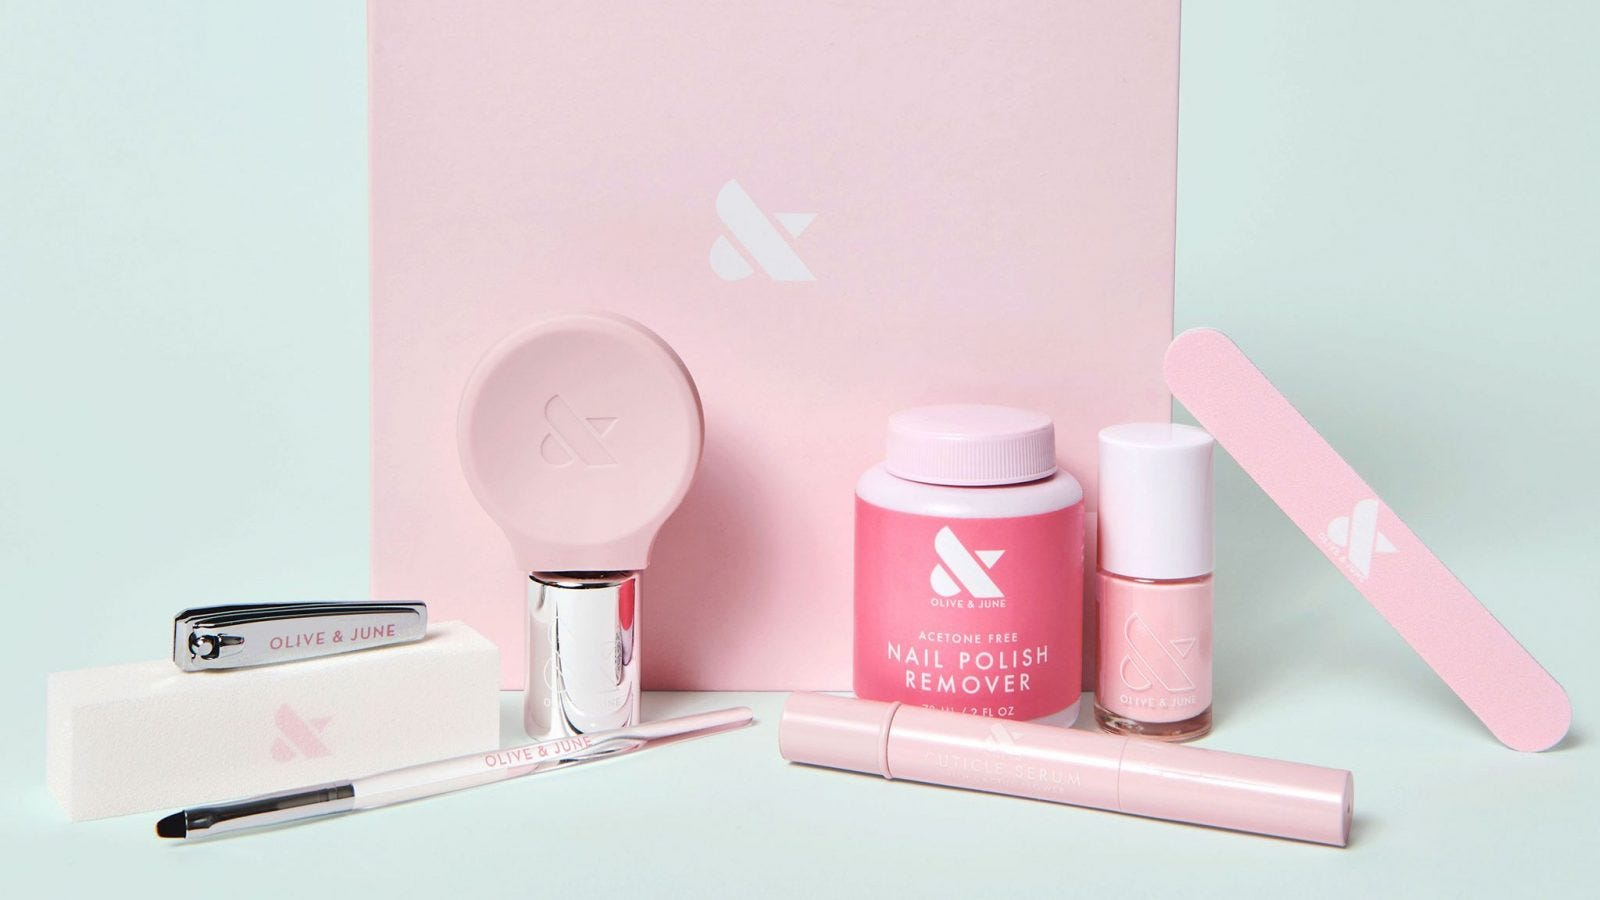 A nail file, buffer, brush, top coat, remover, cuticle serum, and polish sit in front of a box with an ampersand on it.